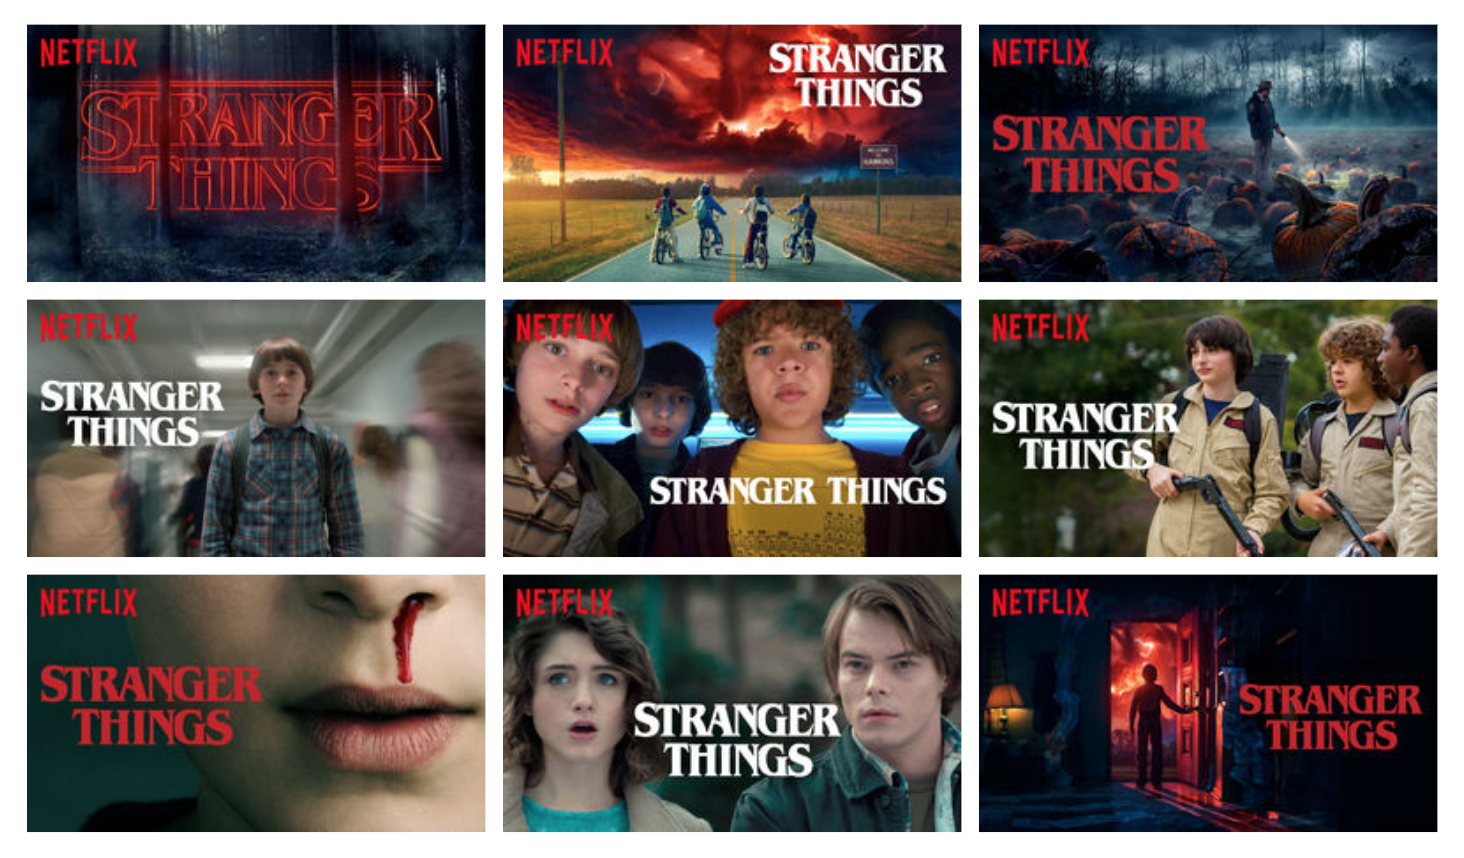 Netflix personalizes hundreds of movie thumbnails for a given user.